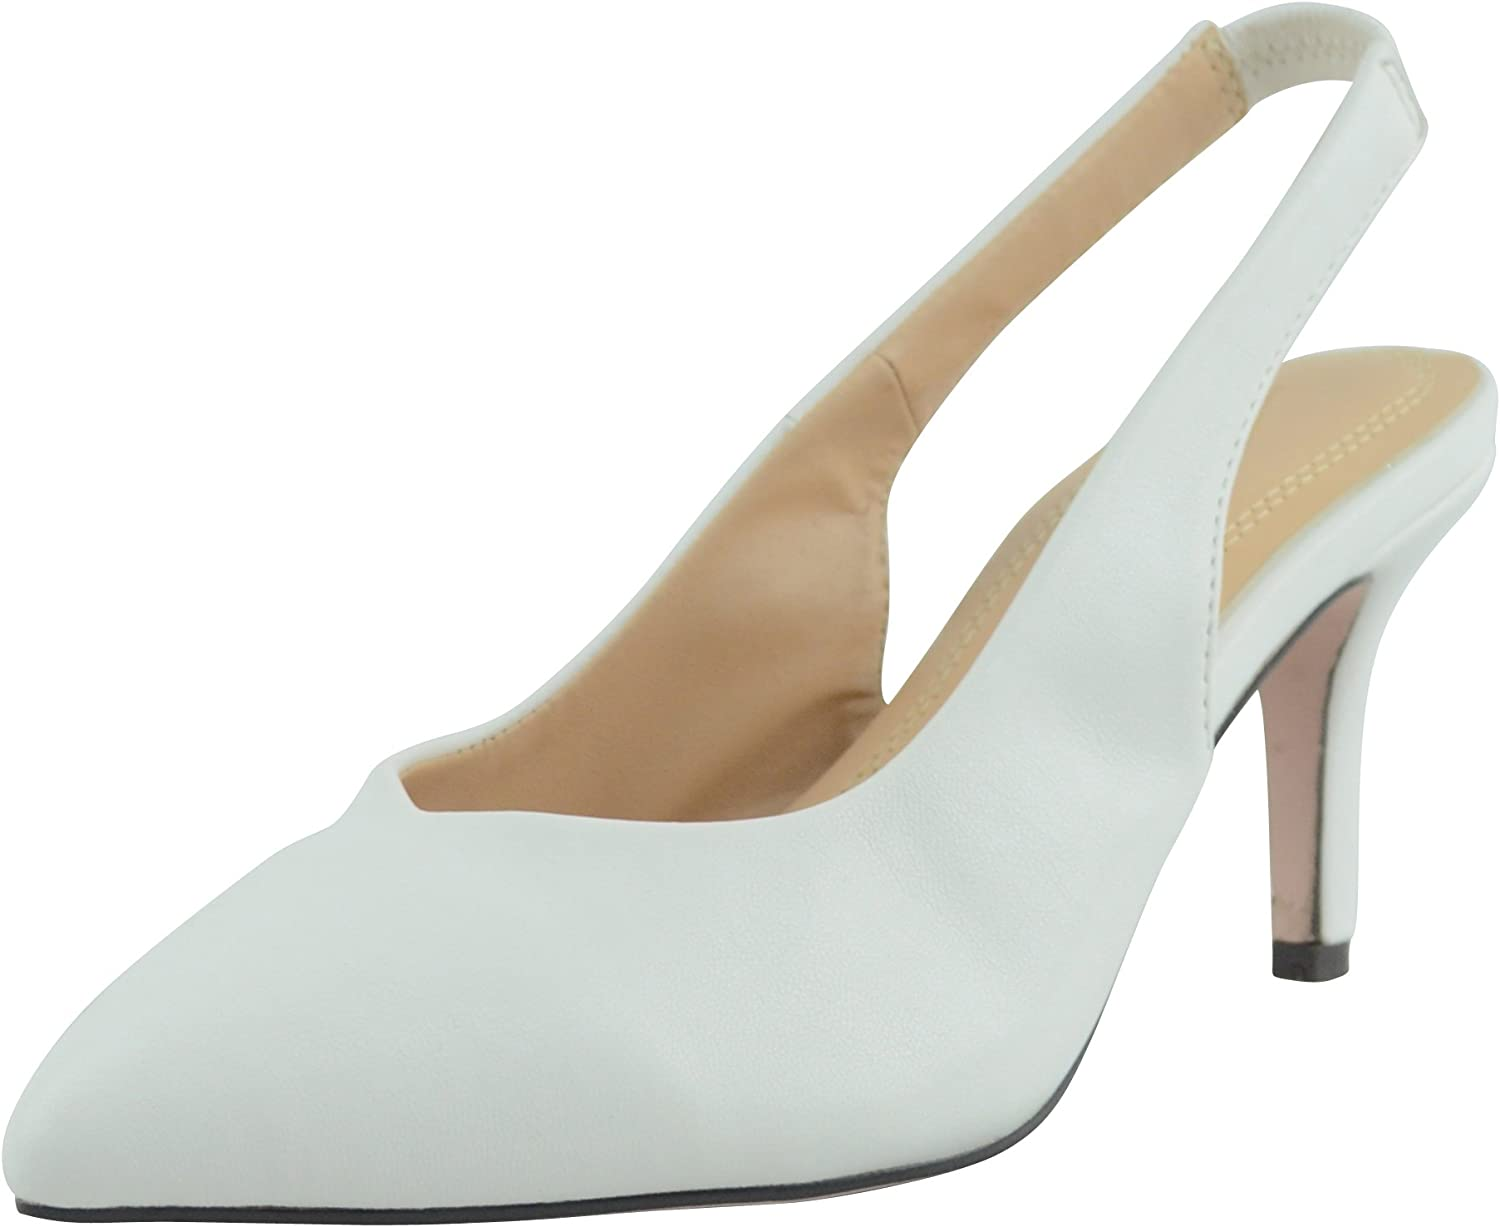 Cambridge Select Women's Closed Pointed Toe Stretch Slingback Mid Heel Pump